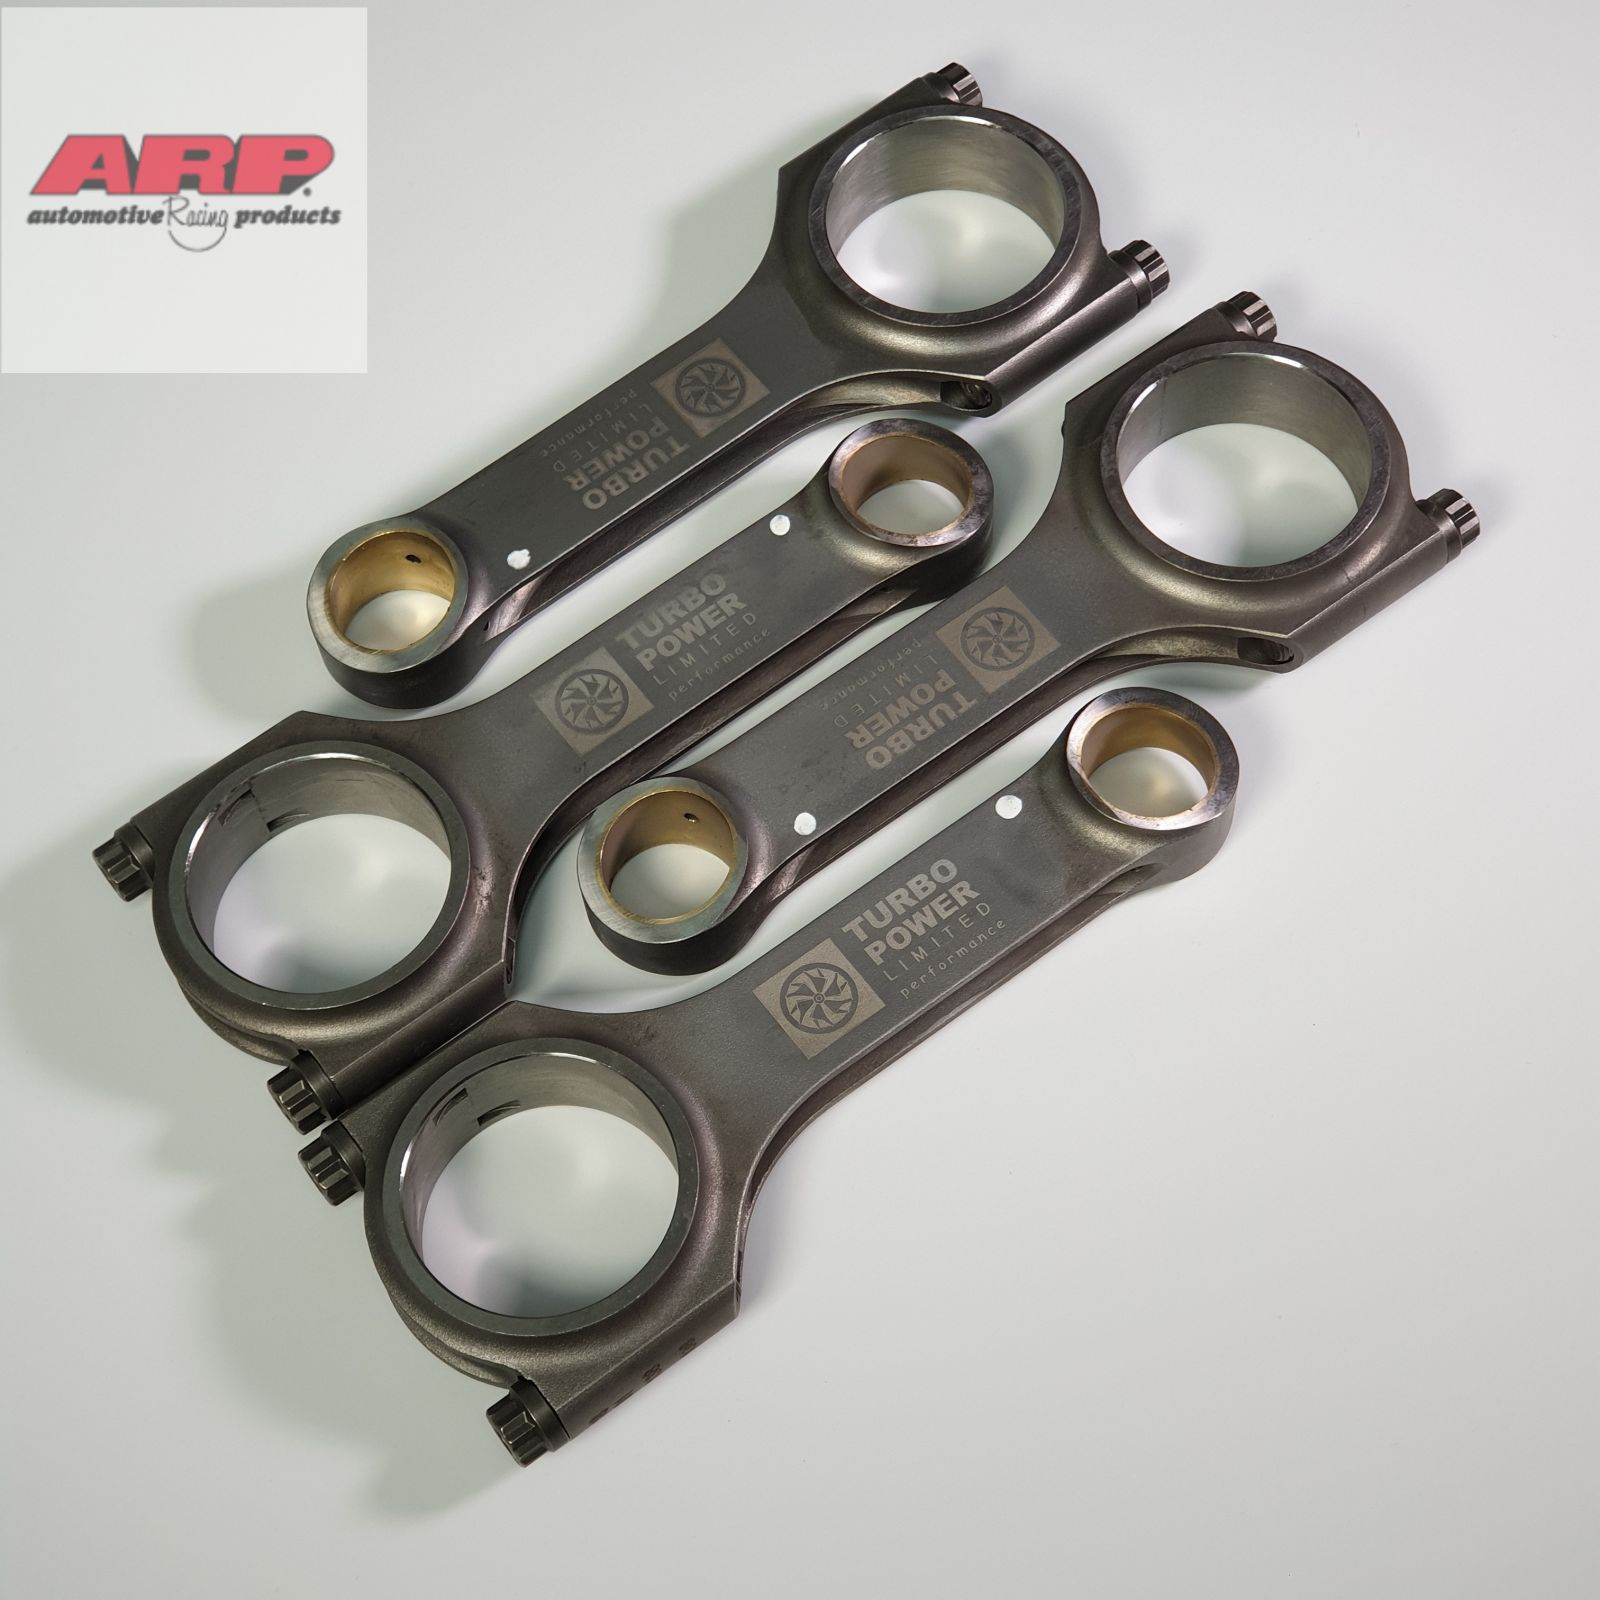 Forged conrods VW, Audi, Skoda, Seat 1.8T 20V + ARP L19